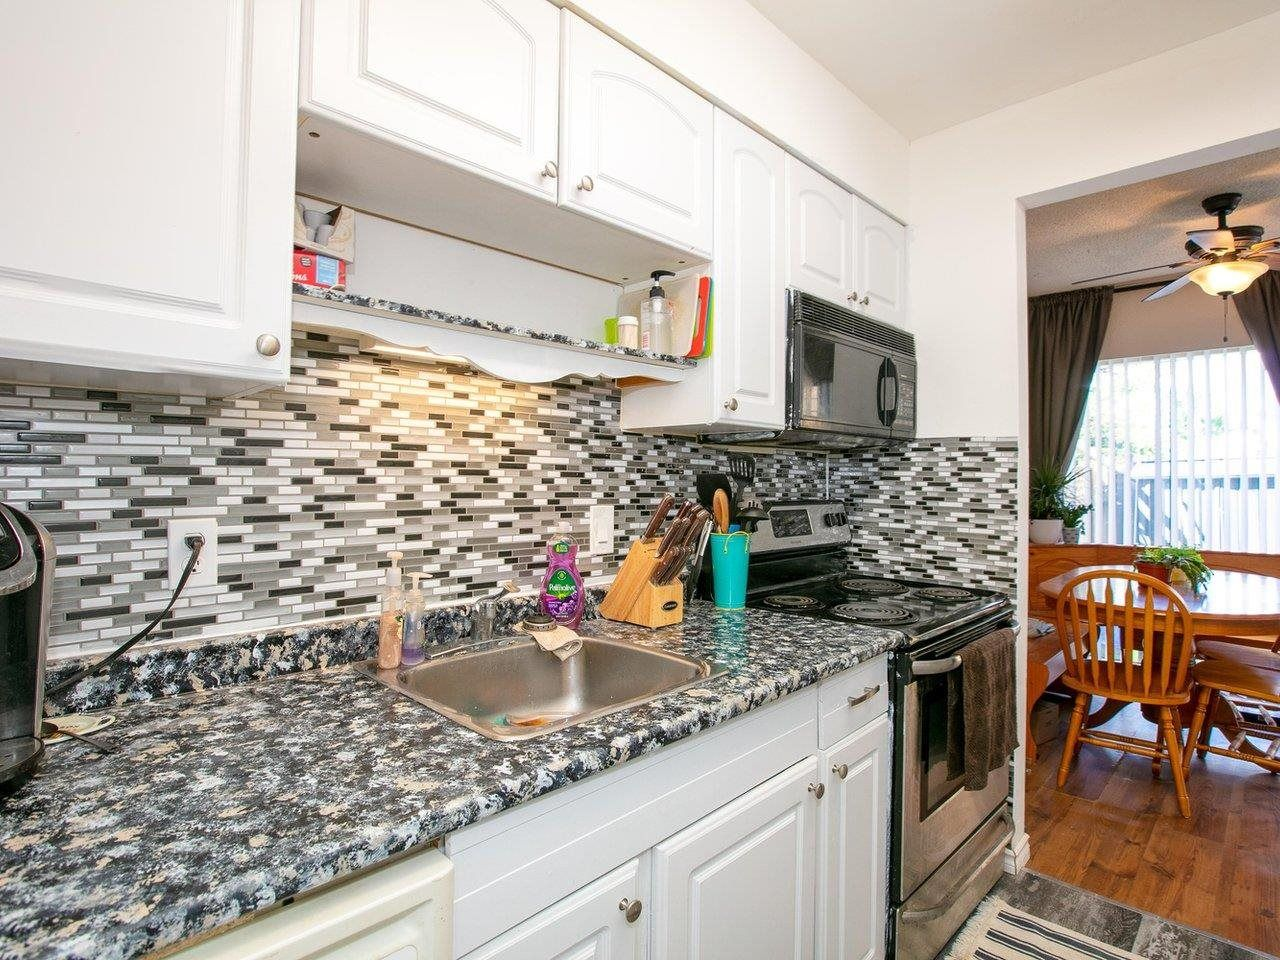 """Photo 8: Photos: 21 10585 153 Street in Surrey: Guildford Townhouse for sale in """"Guildford Mews"""" (North Surrey)  : MLS®# R2593242"""